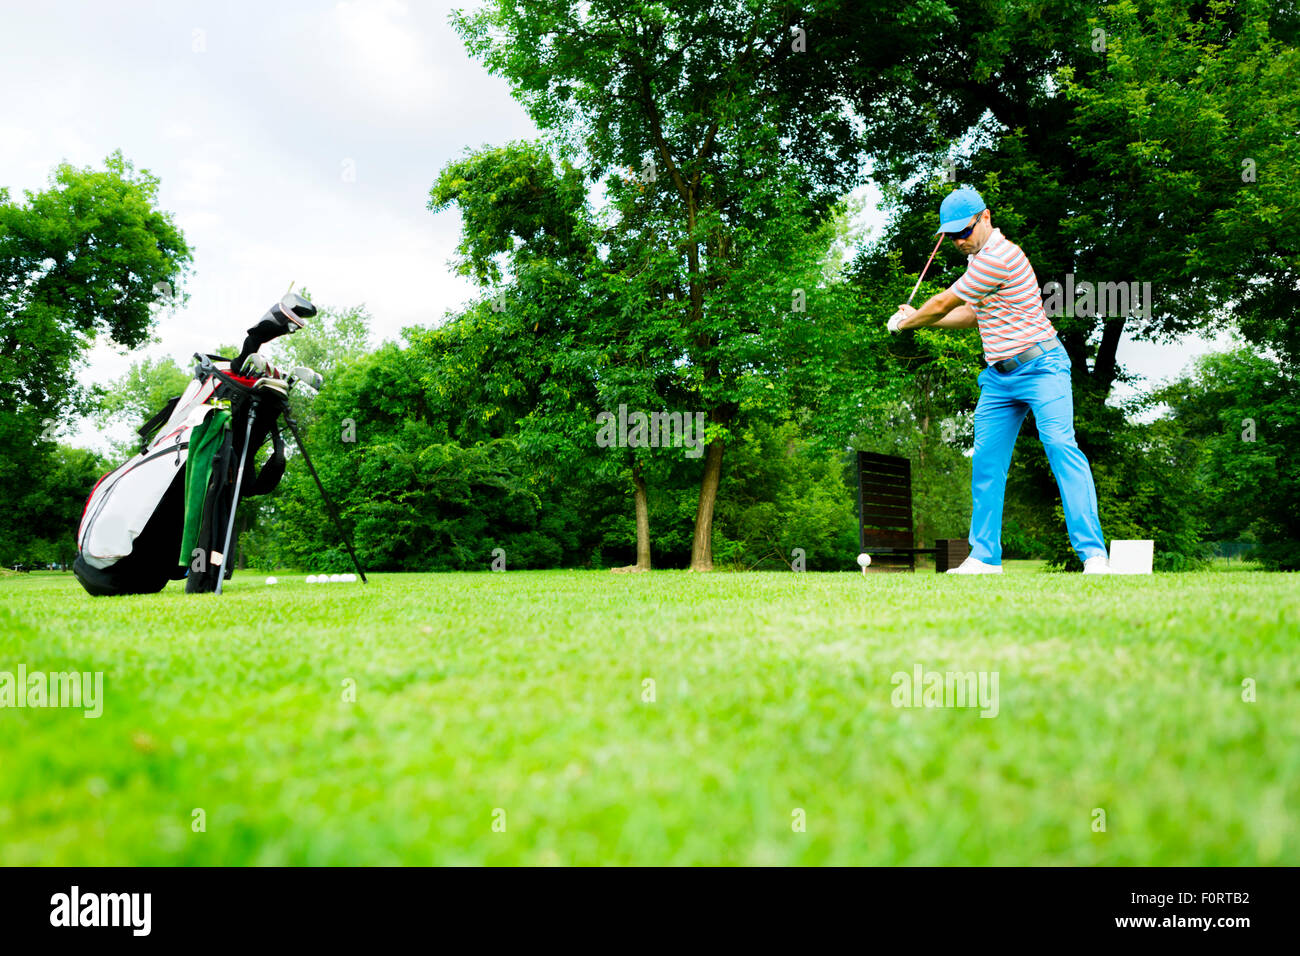 Golfer getting ready to hit the first long shot - Stock Image